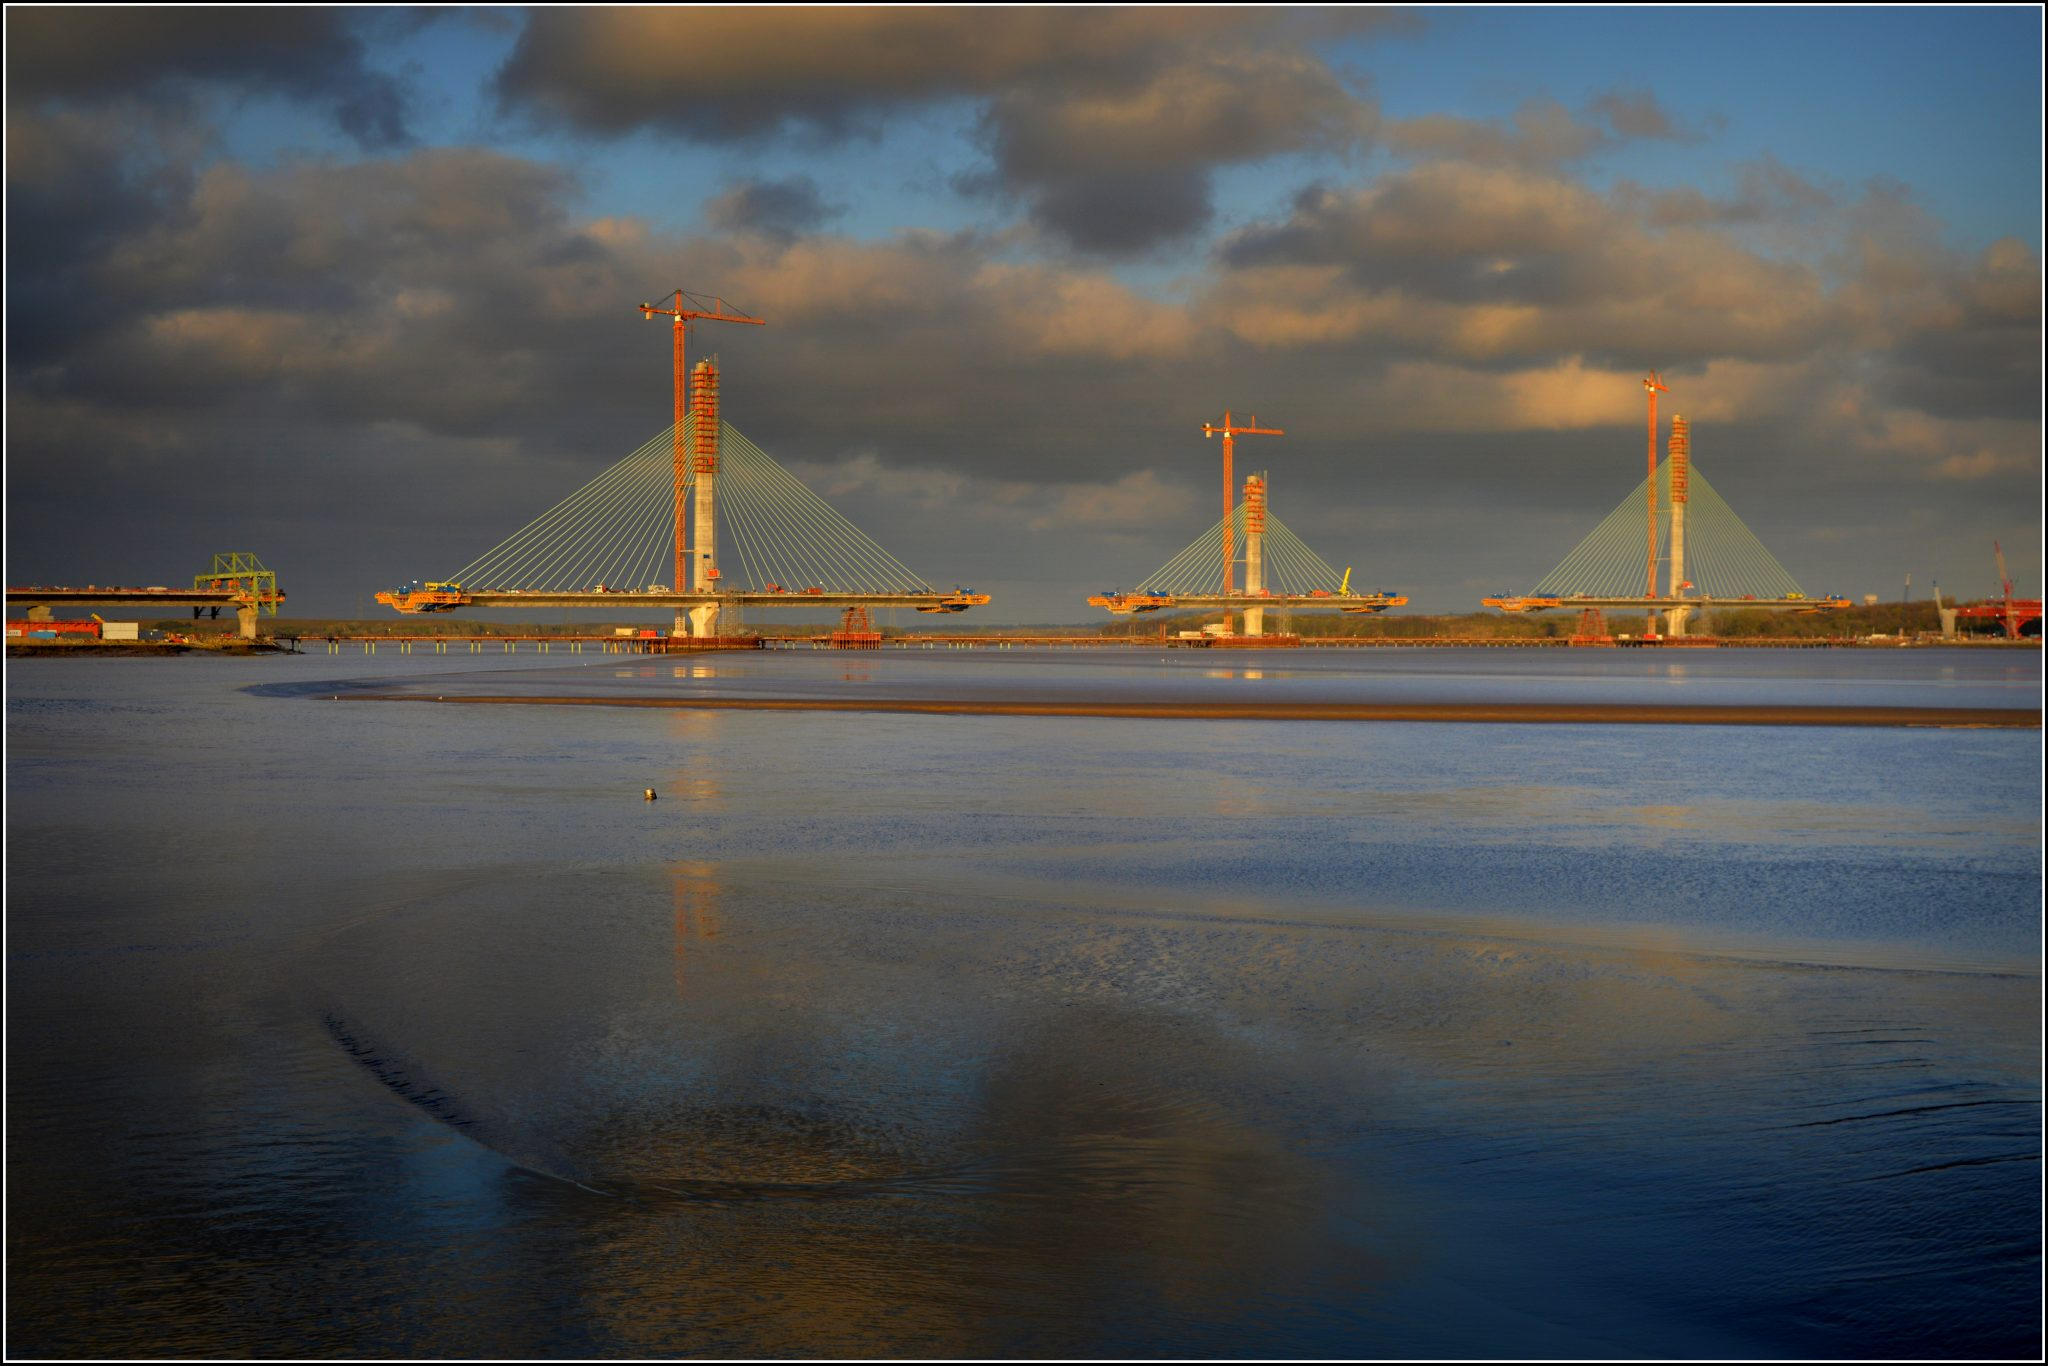 Special Form travellers for Mersey Gateway Bridge